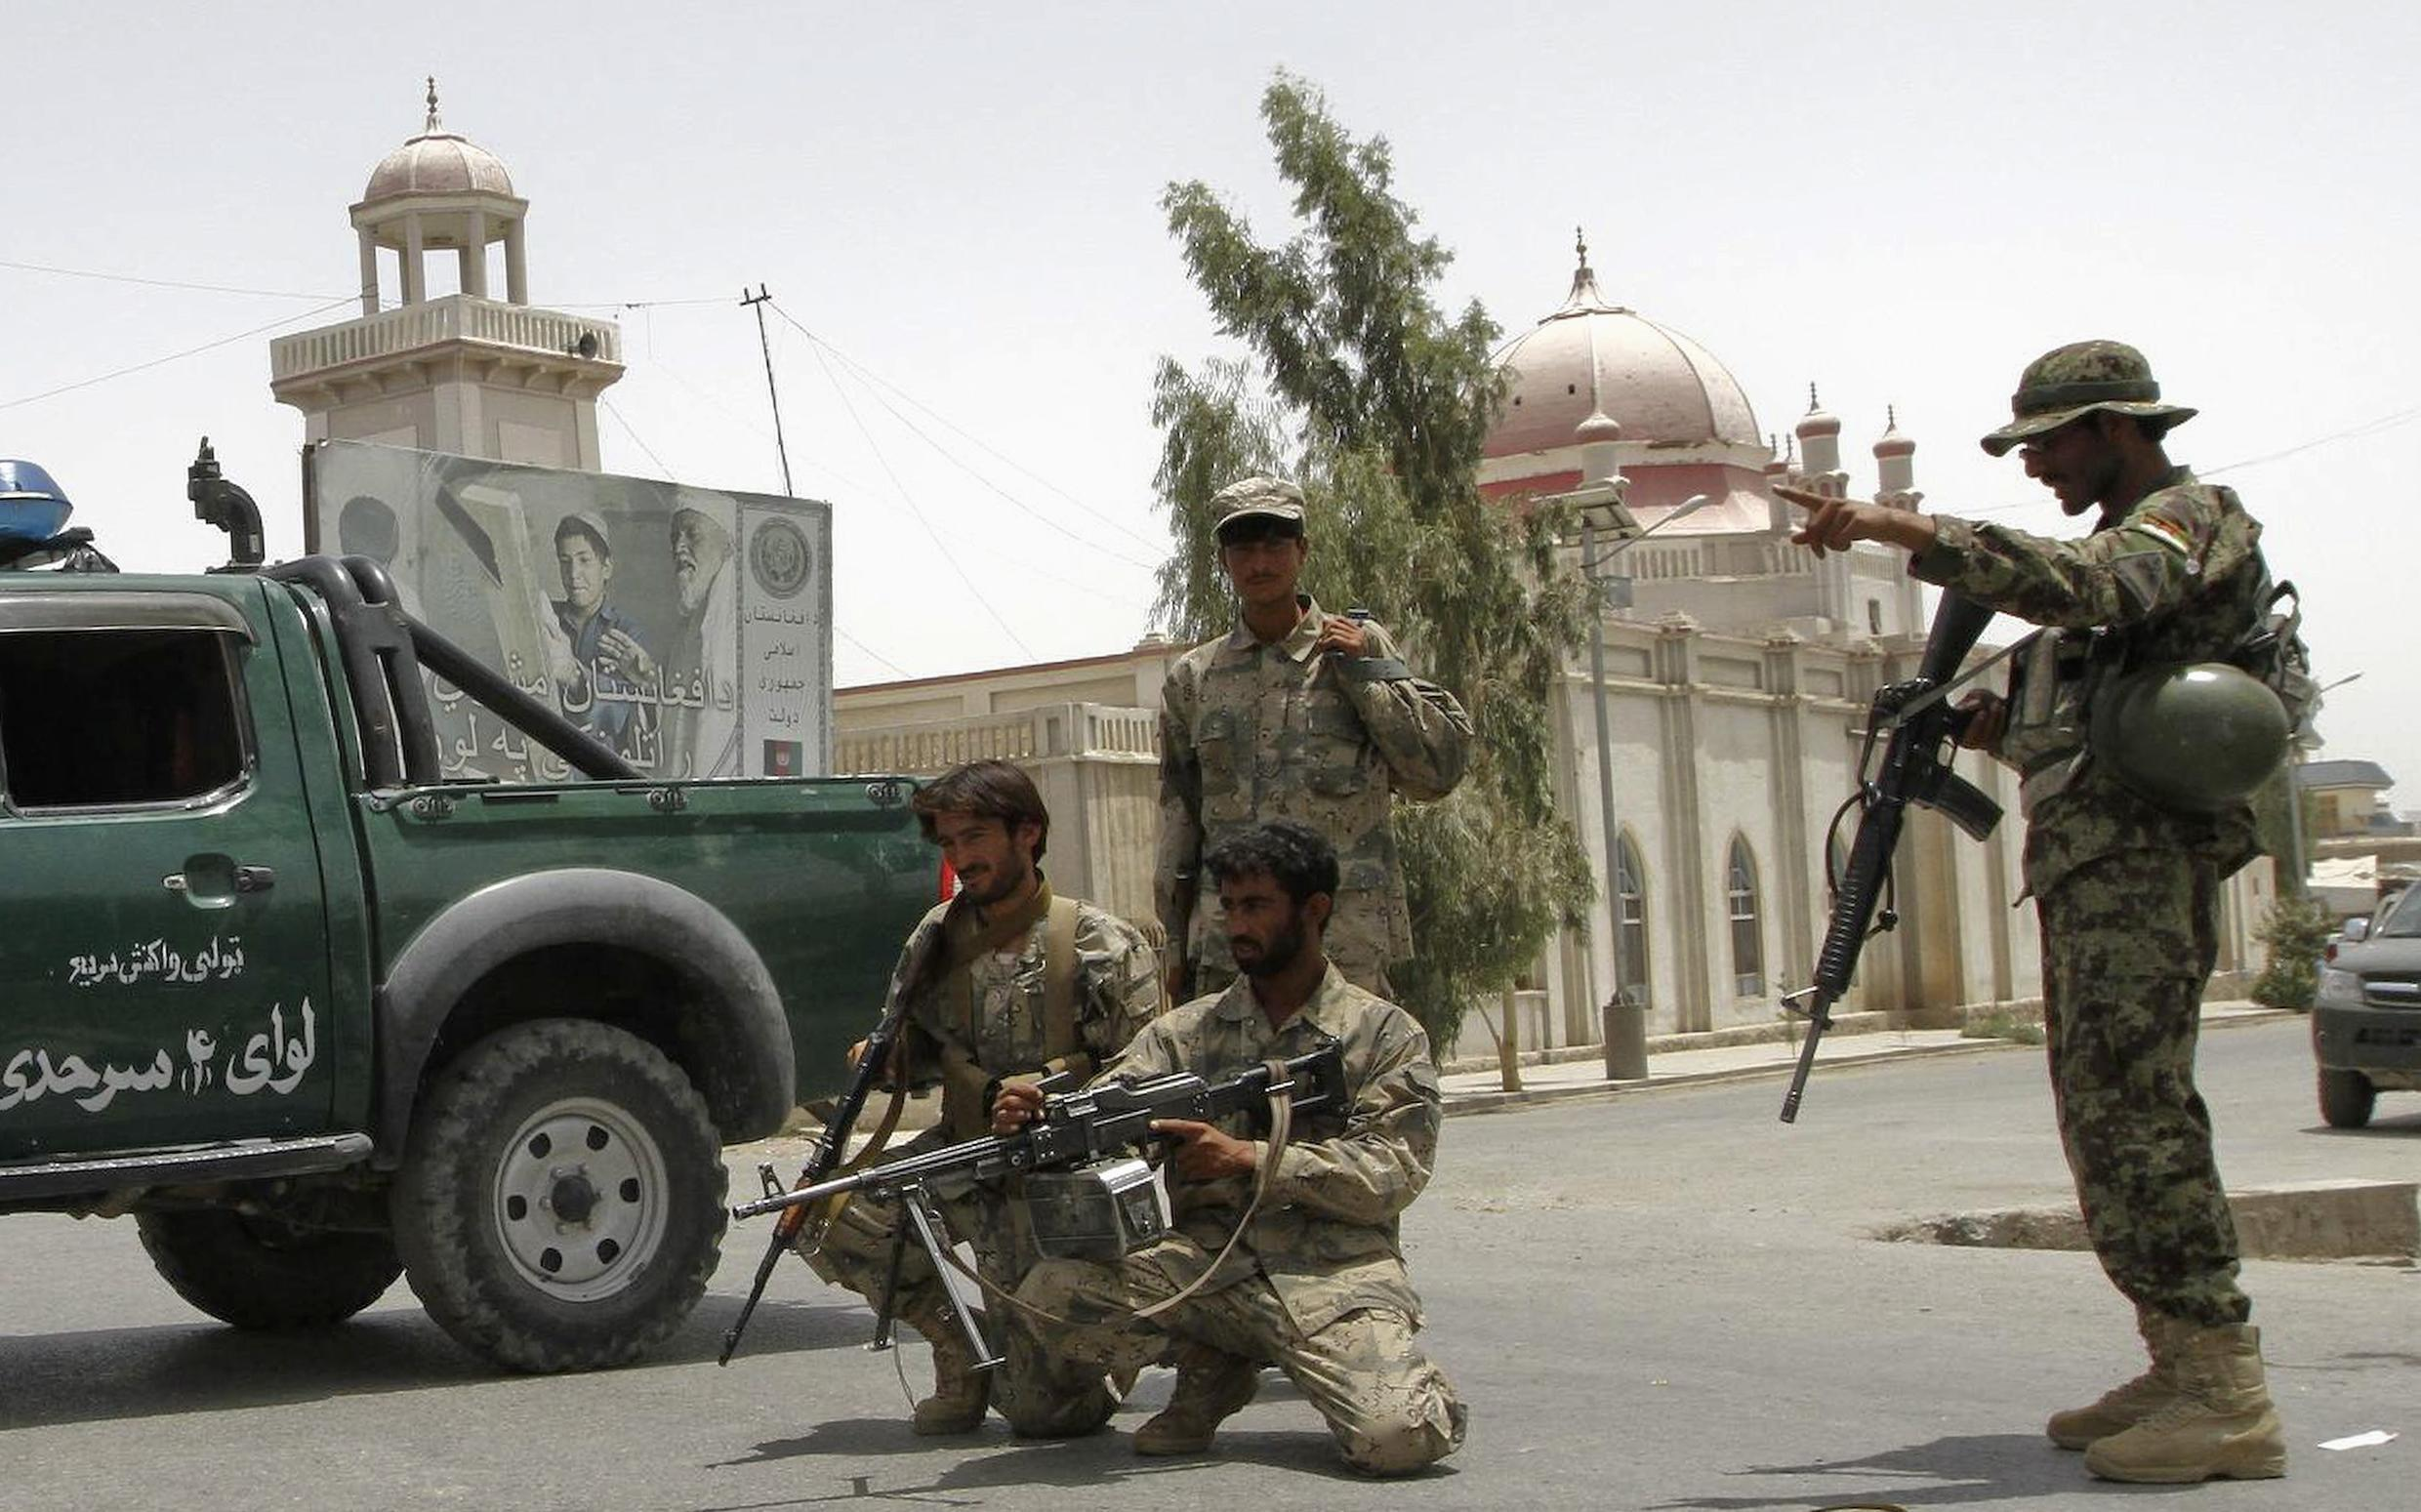 A police roadblock in Kandahar earlier this month